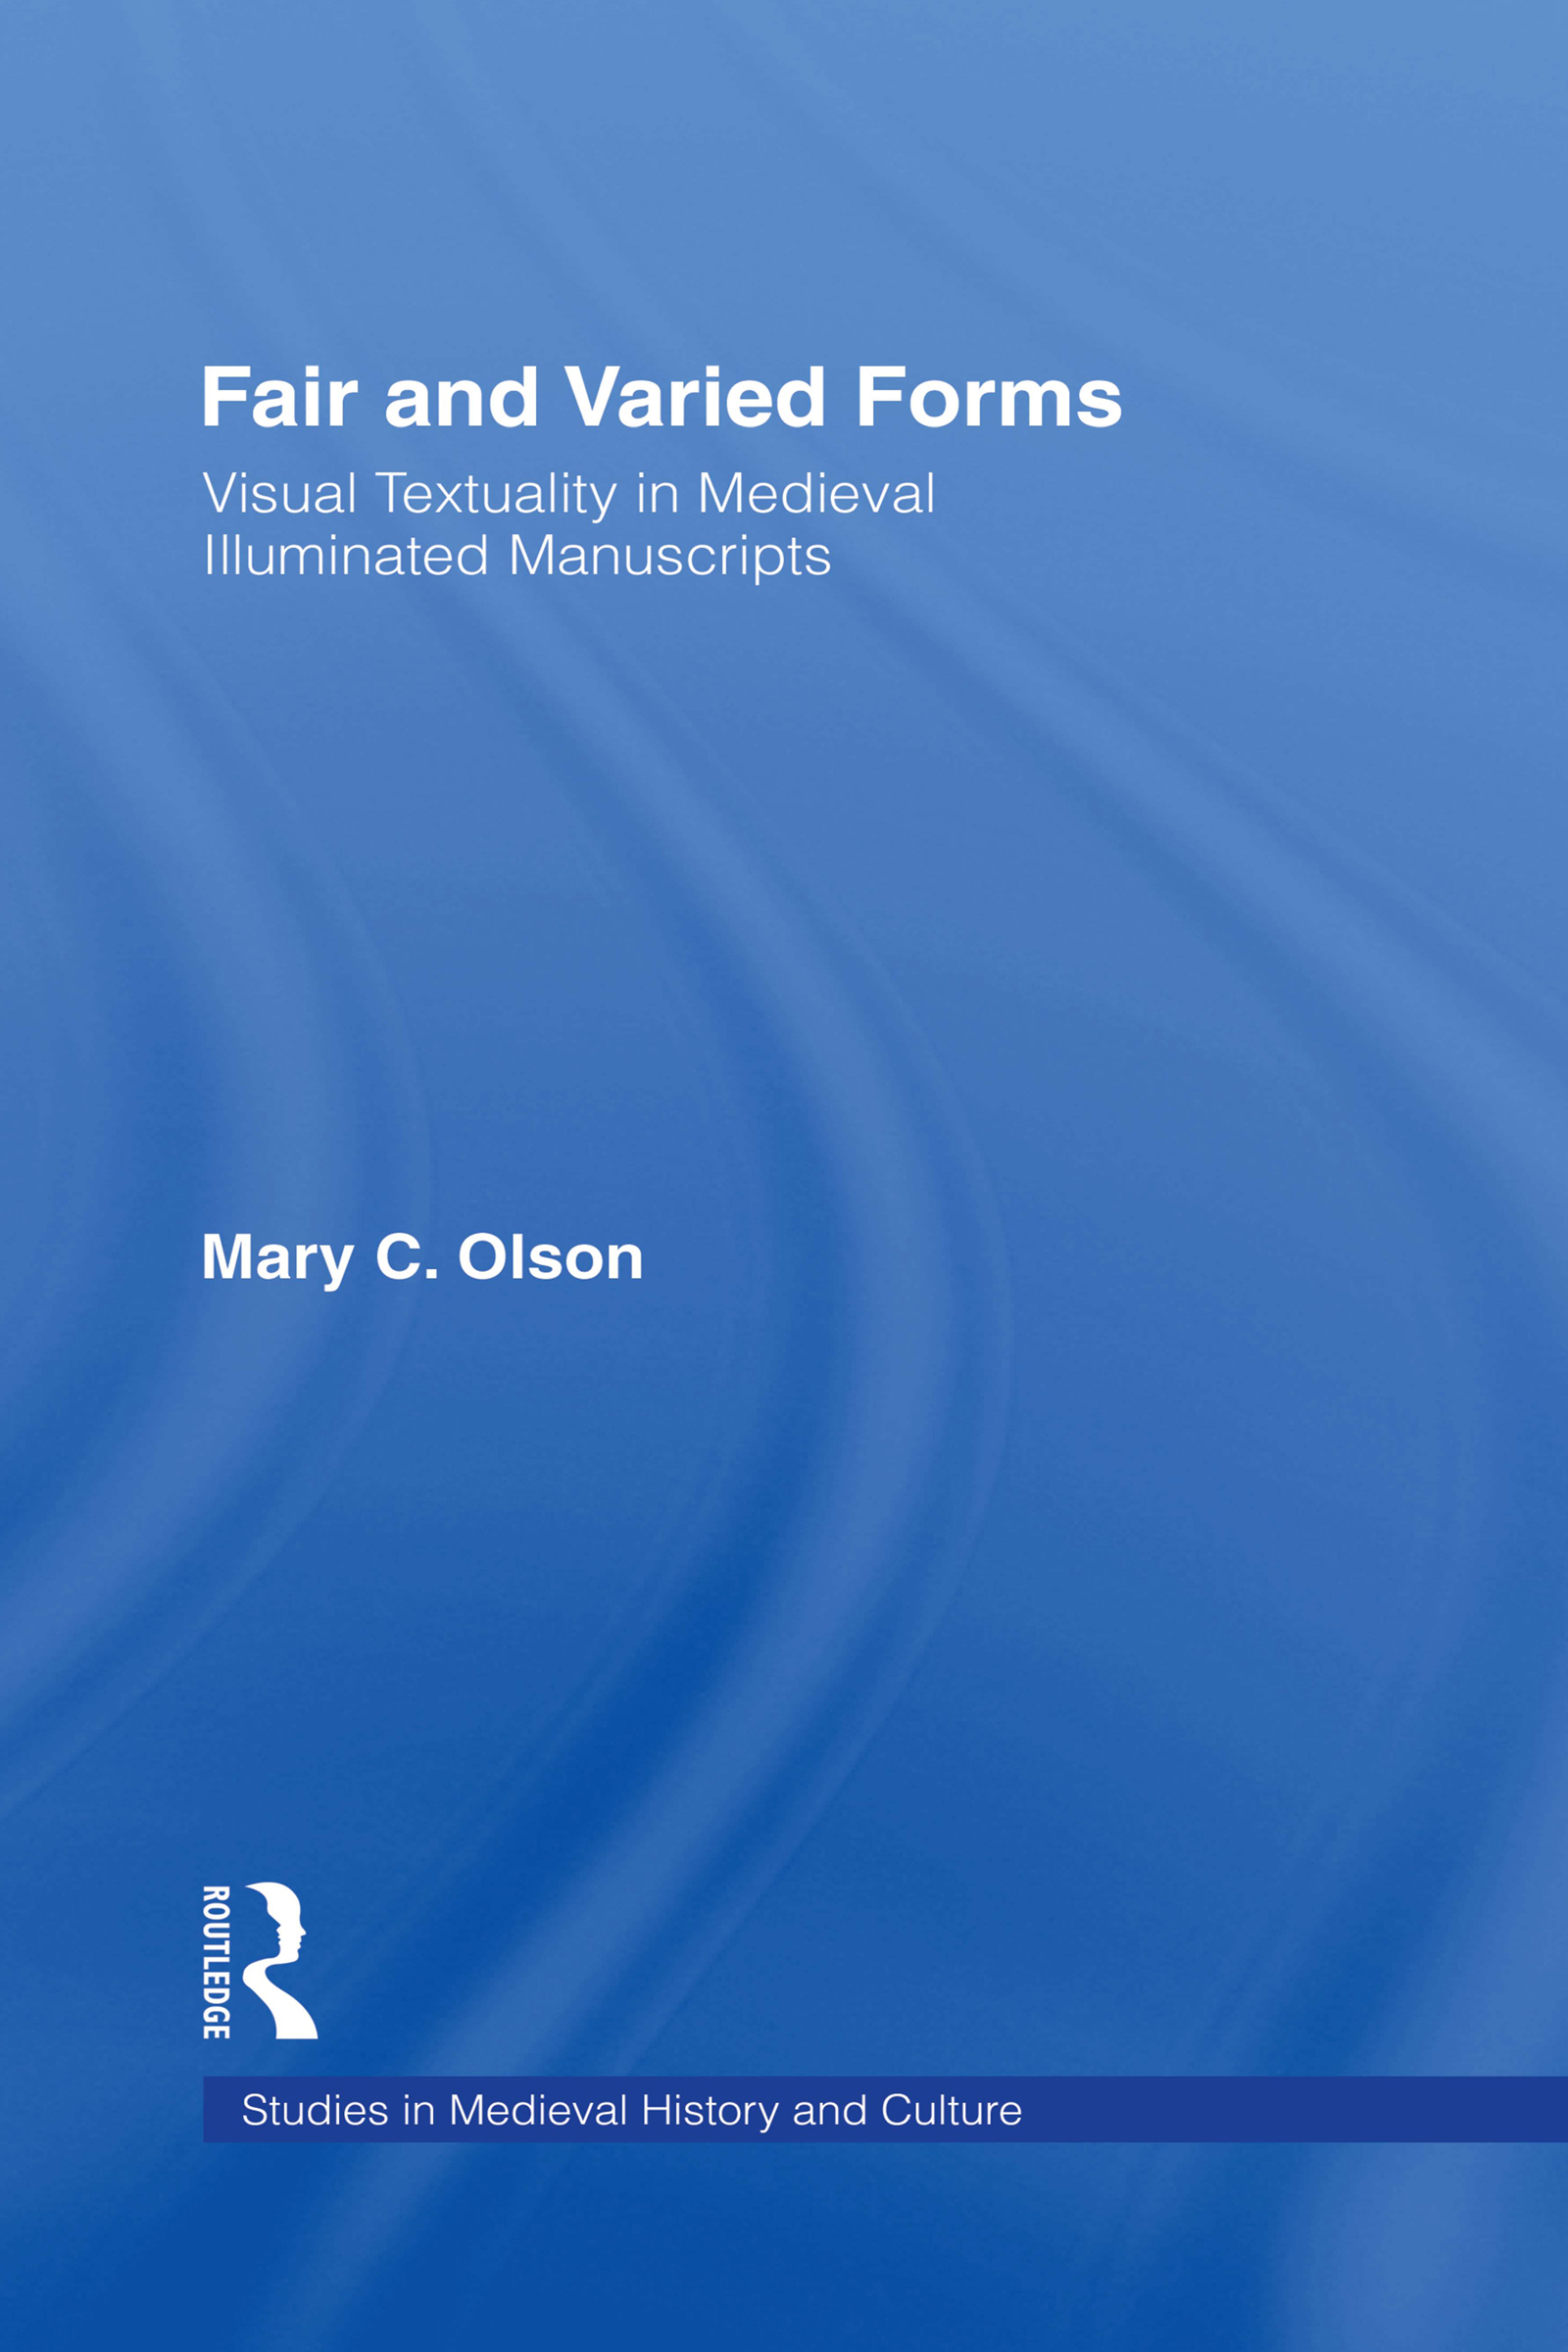 Fair and Varied Forms: Visual Textuality in Medieval Illustrated Manuscripts book cover